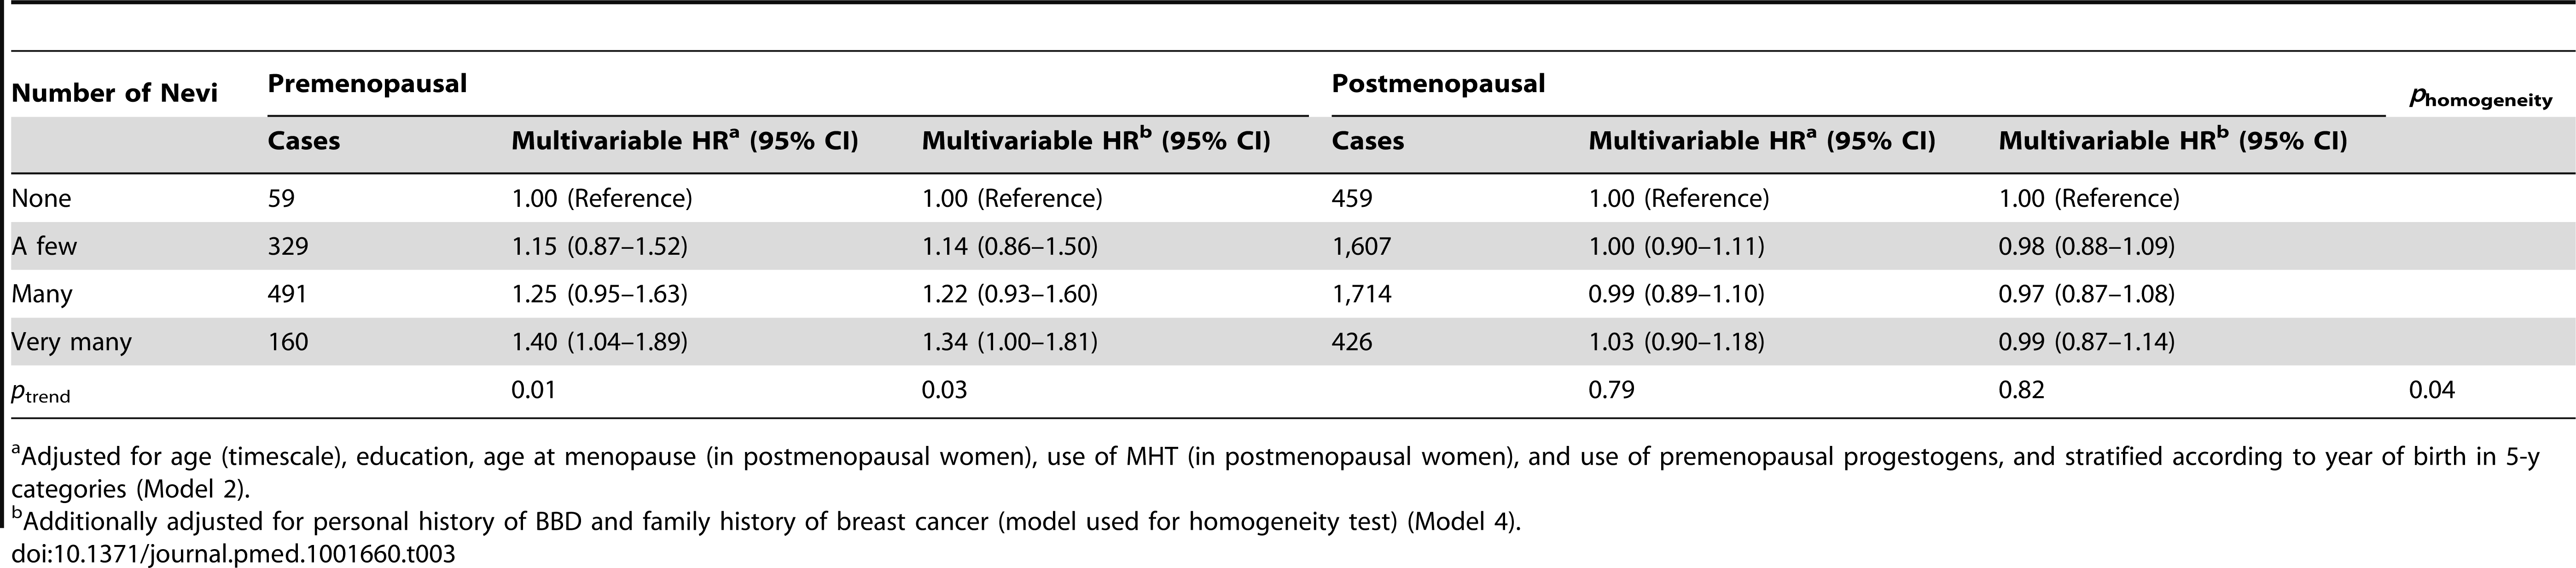 Hazard ratios and 95% confidence intervals for risk of breast cancer in relation to number of nevi, stratified by menopausal status, E3N cohort (<i>n = </i>89,802).